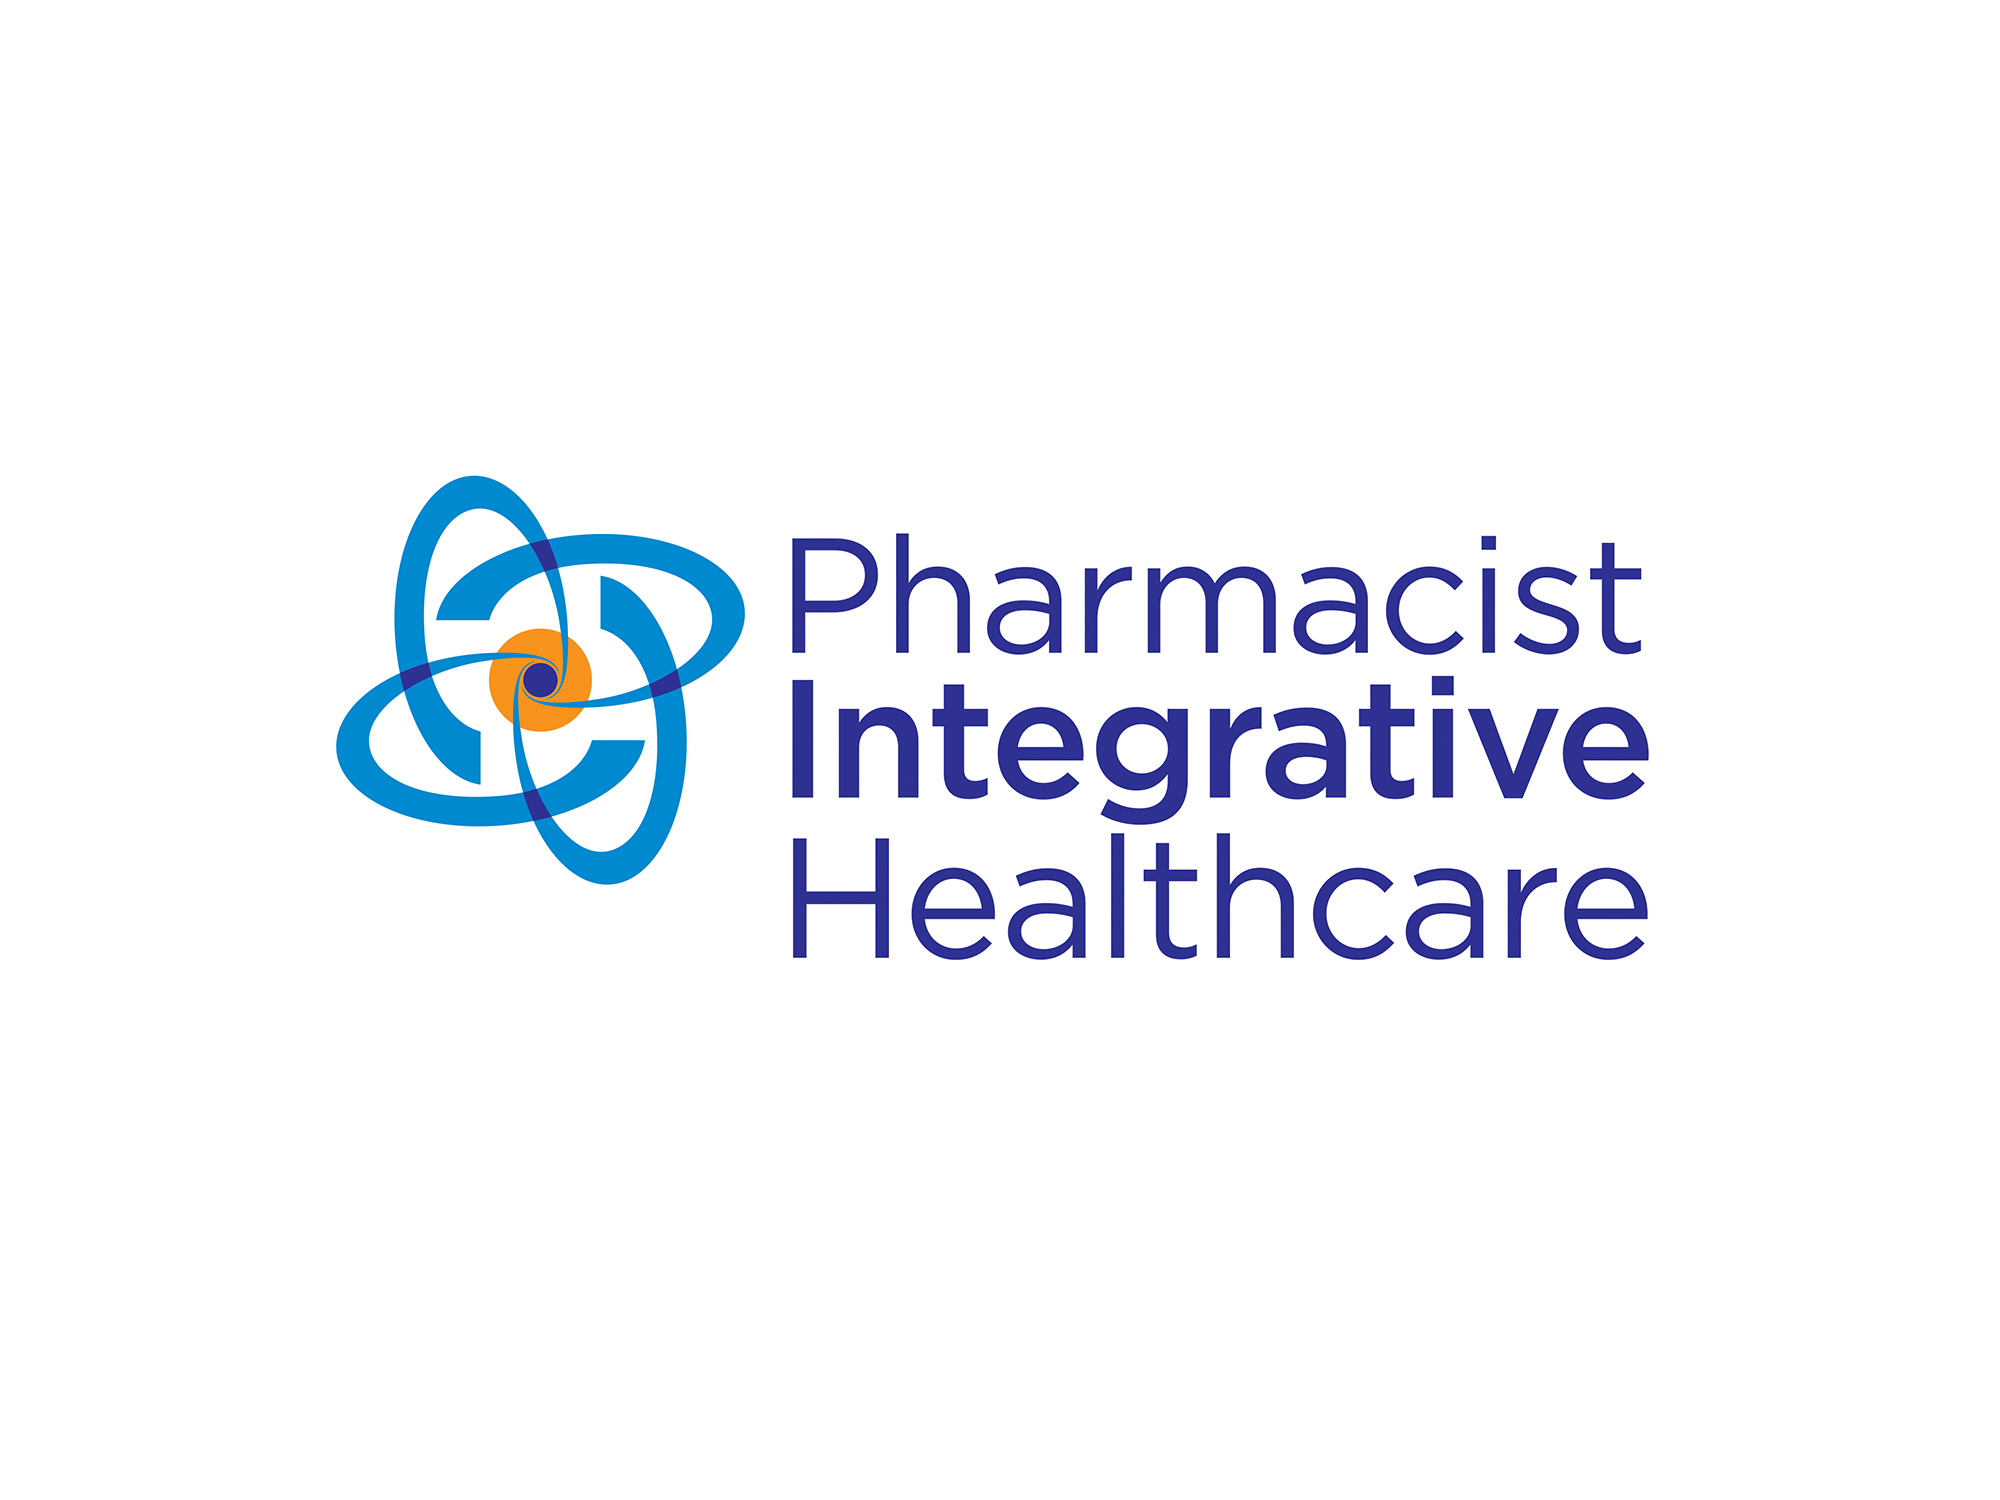 http://www.newmangrace.com/project/pharmacist-integrative-healthcare/